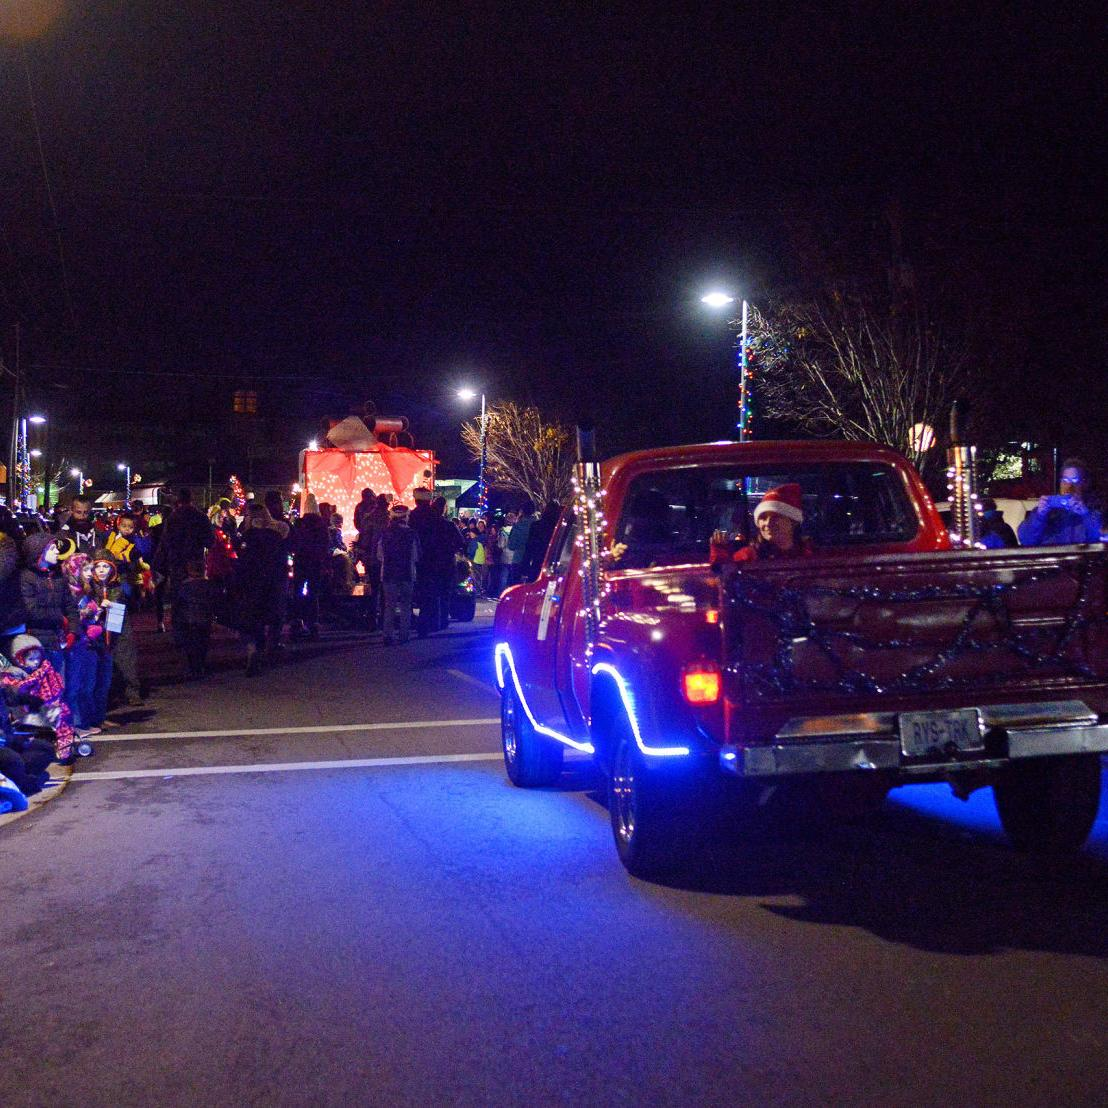 St Clair Holiday Parade 2016